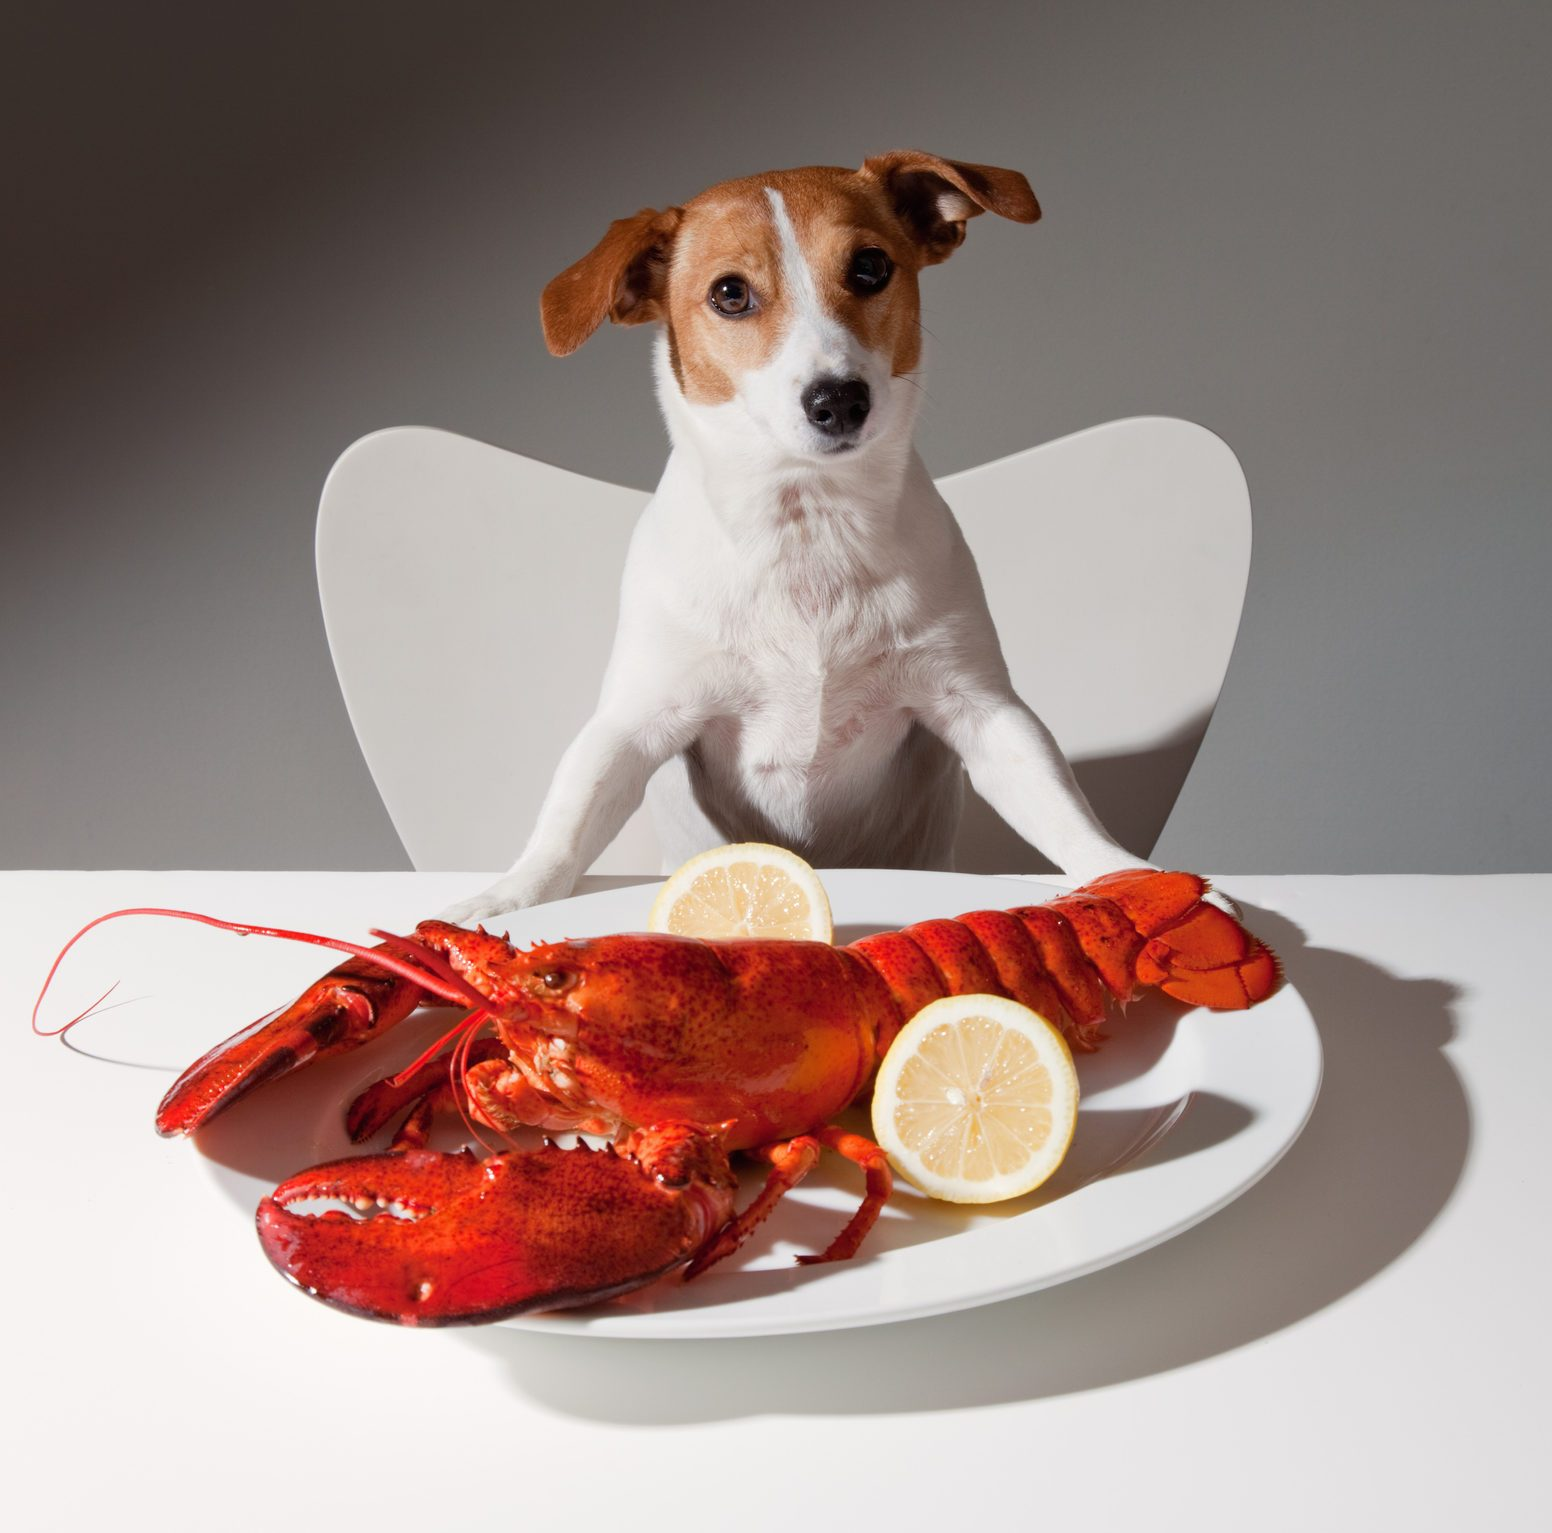 Dog with lobster dinner